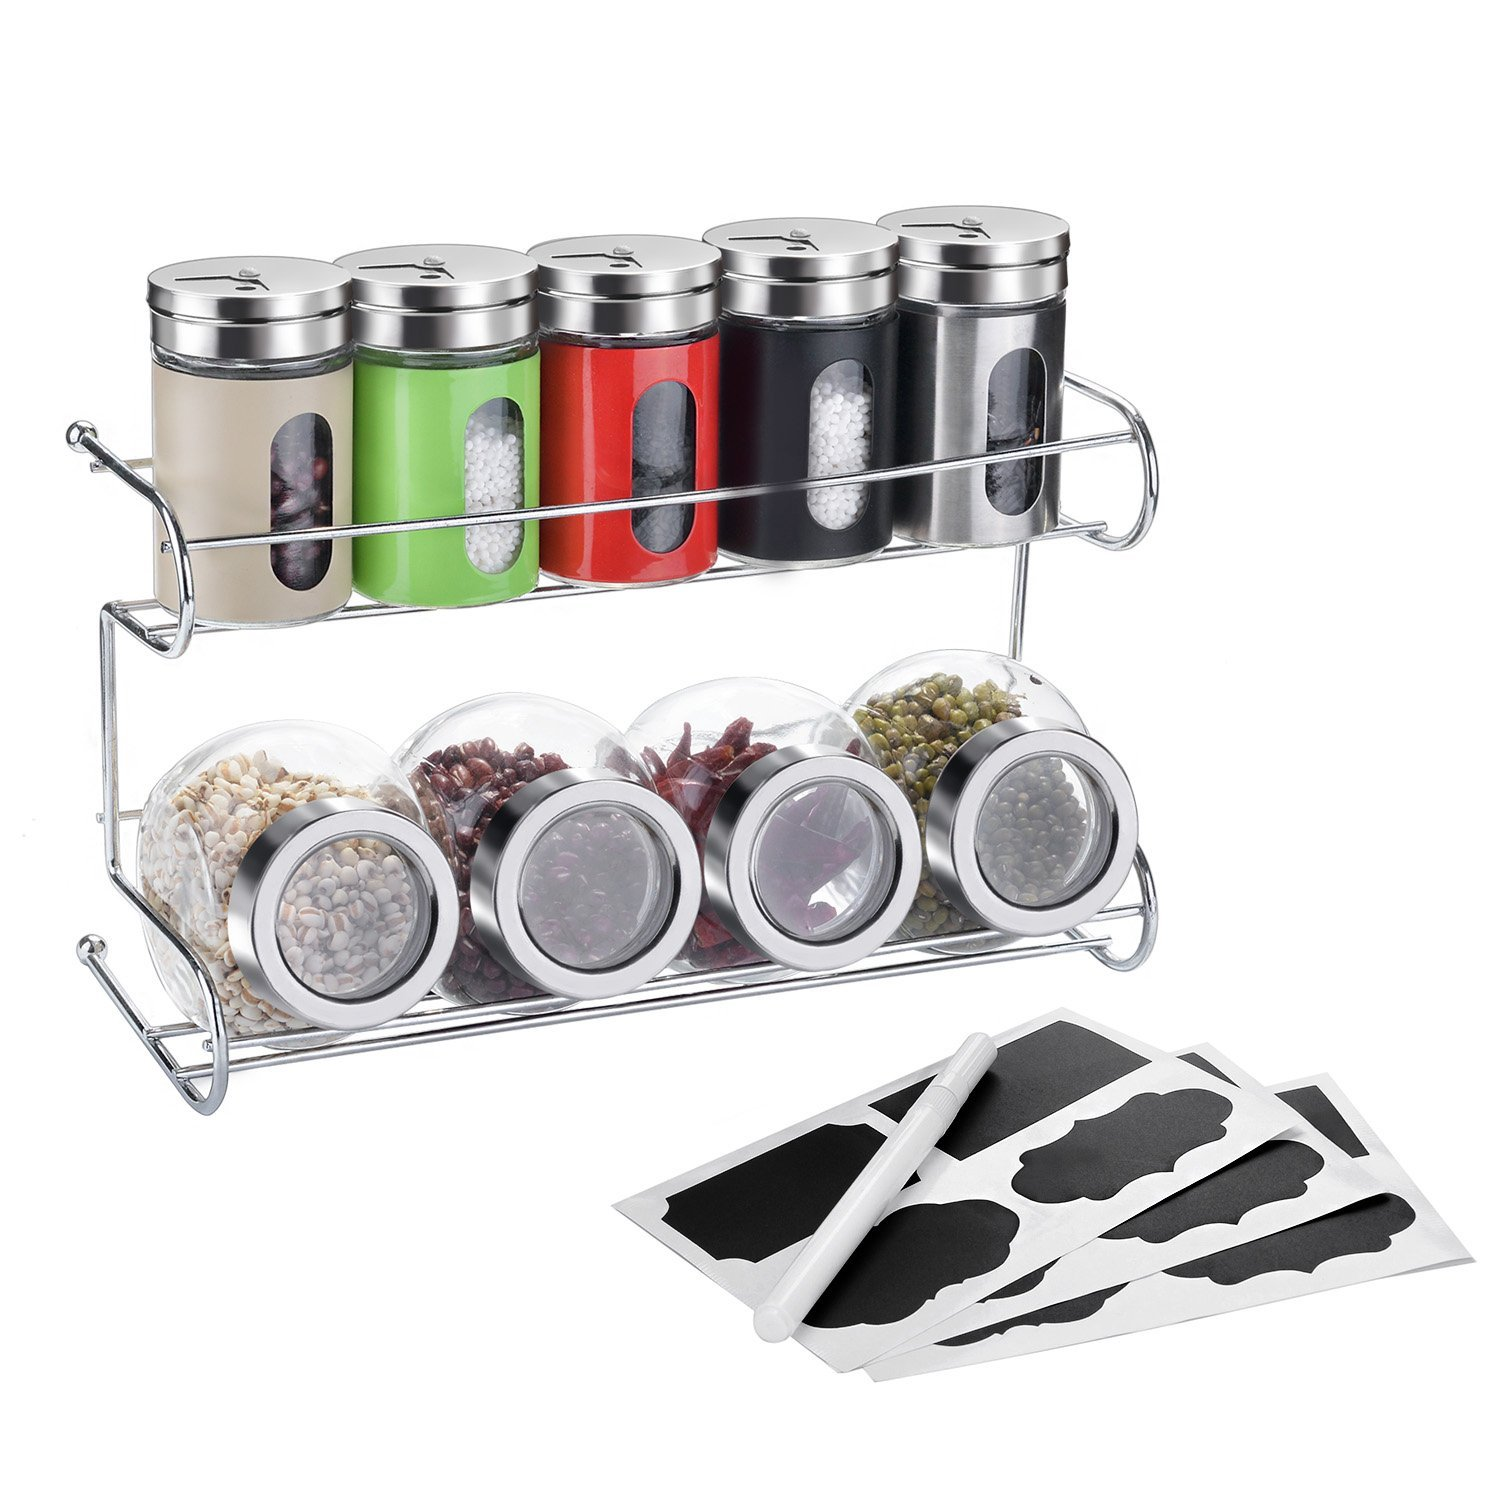 Kitchen 9-Jar Spice Rack, Fitnate Spice Shelf Organizer With 5 Spice Bottles,4 Storage Jar And Mark Label Set For Free